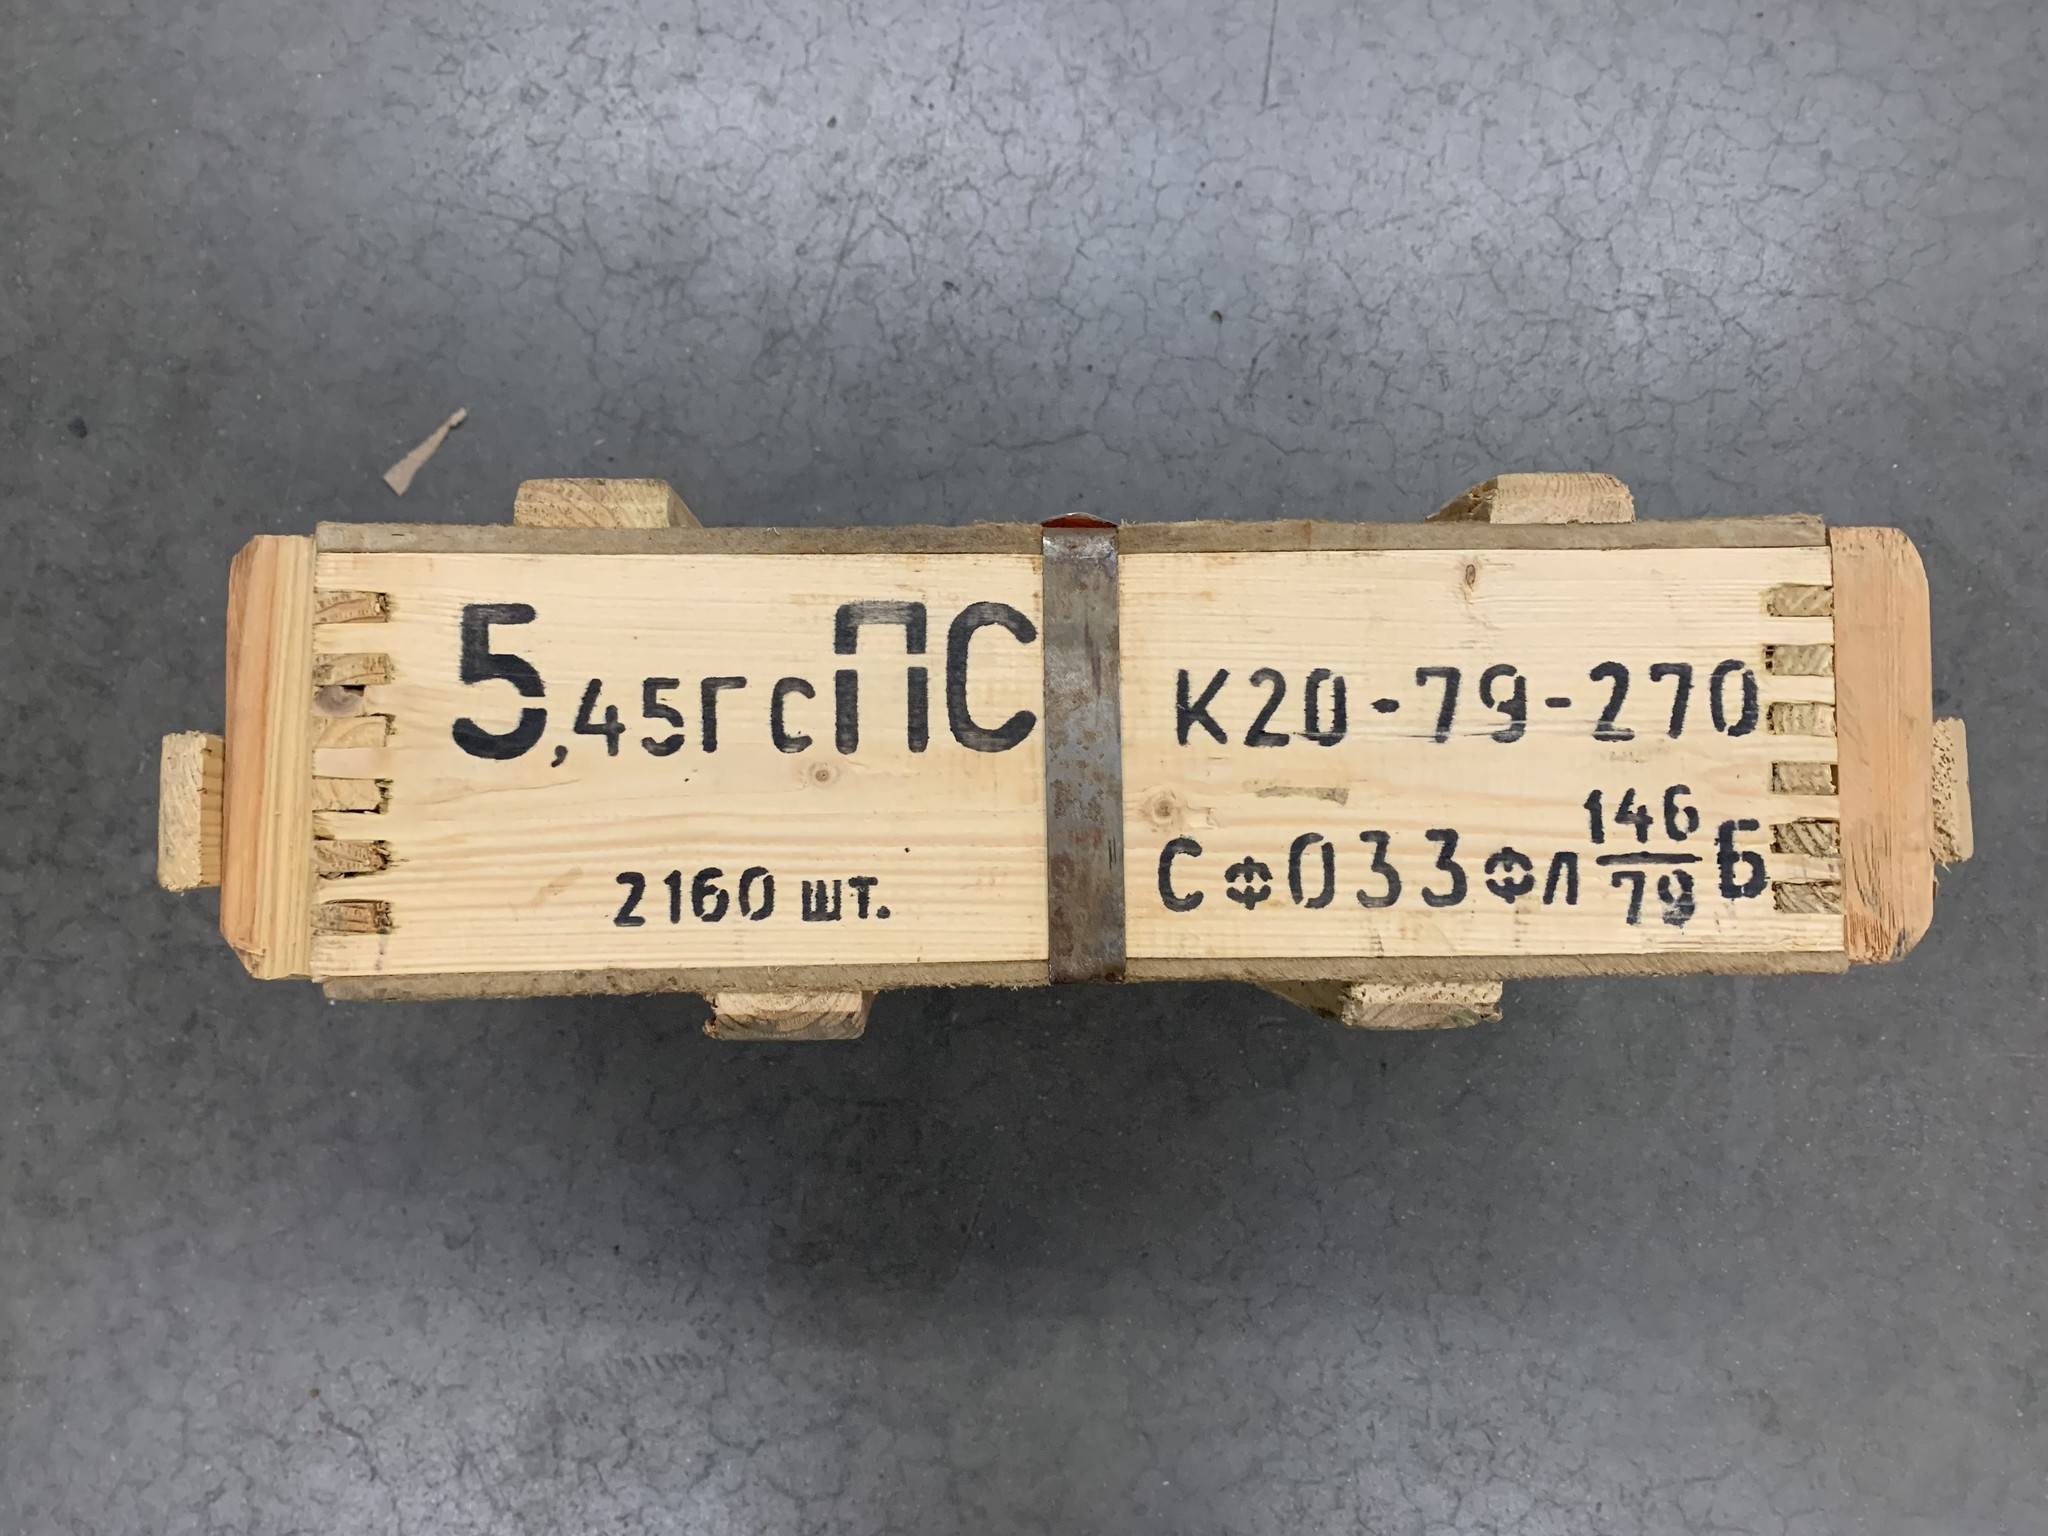 Russian Surplus 5.45 x 39 7N6 Ammunition, Box of Two Cans,  2160 Rounds